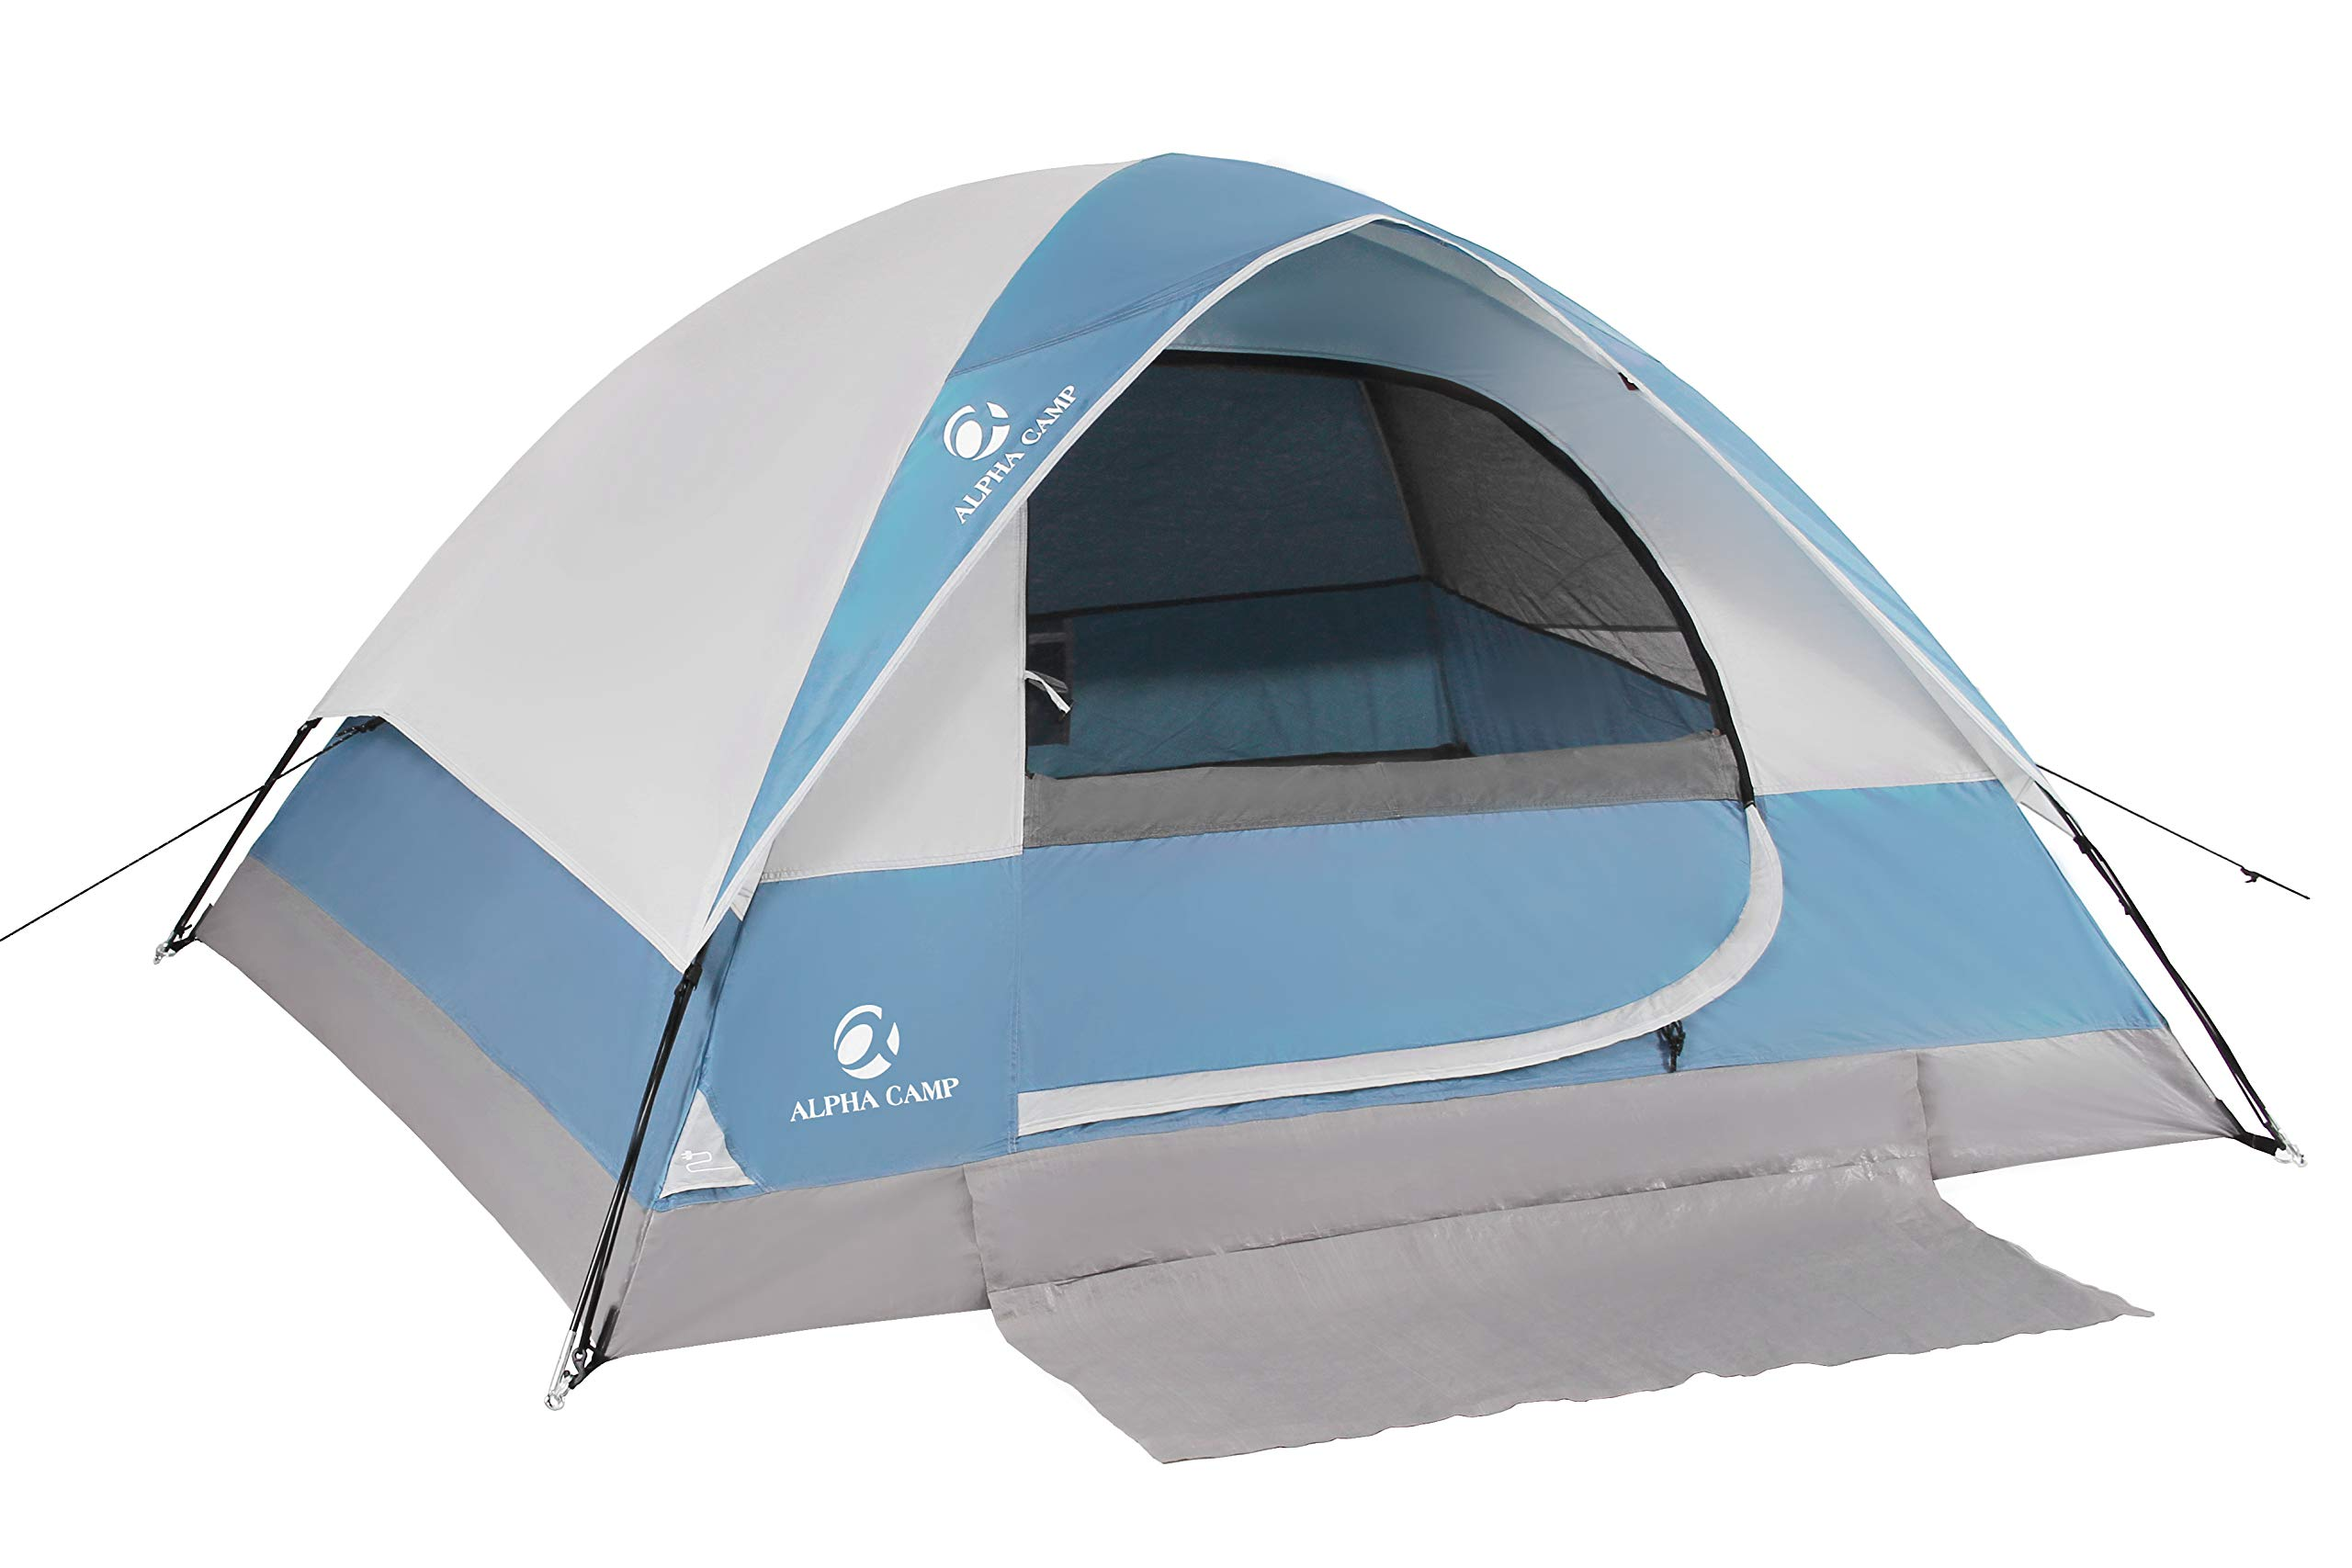 ALPHA CAMP 2-Person Camping Dome Tent with Carry Bag, Lightweight Waterproof Portable Backpacking Tent for Outdoor Camping/Hiking/Beach, Blue by ALPHA CAMP